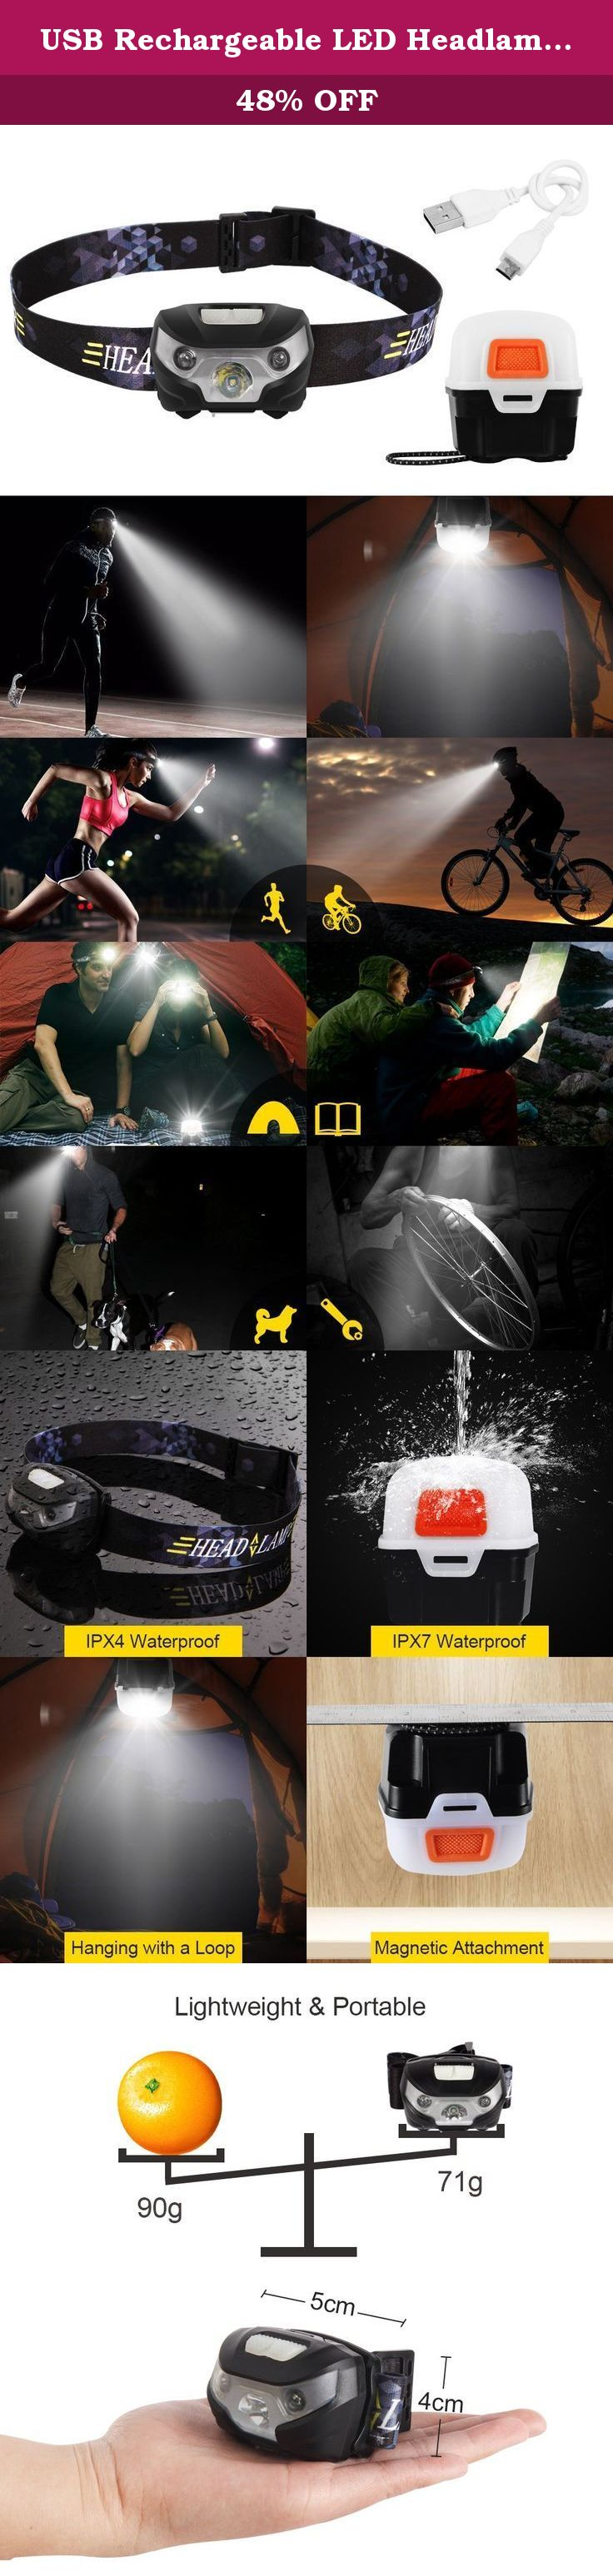 USB Rechargeable LED Headlamp Flashlight, White and Red Light Switches, 5 Modes/180 Lumens, Waterproof(IPX4), Magnetic Lantern Box and USB Cable Included, for Camping, Hiking, Running, DIY. Be your Patron God and accompany you on a trip to a whole new world at night With the company of CS Force headlamp, nightfall is no longer the end of outdoor activities. The lightweight headlamp could set your hands free and be adjusted(up to 60 degrees) to illuminate your road in the dark…